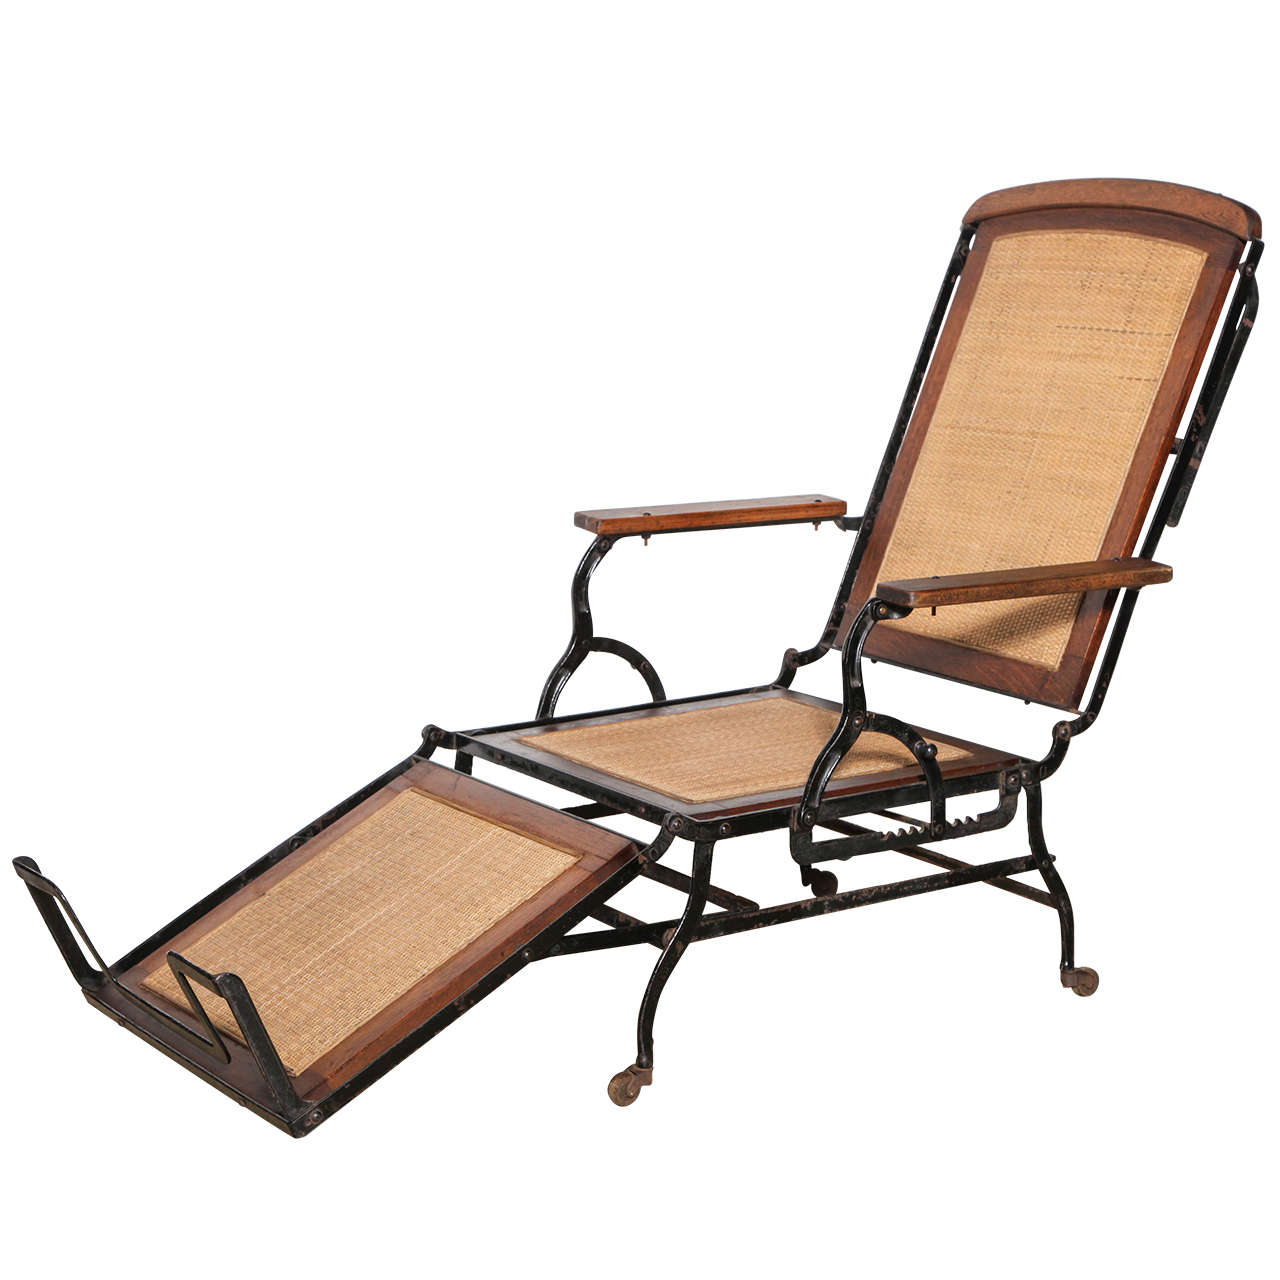 toing best pictures and chairs the lowes design padded outdoor literarywondrous ideas folding cheap chair foldable chaise lounge